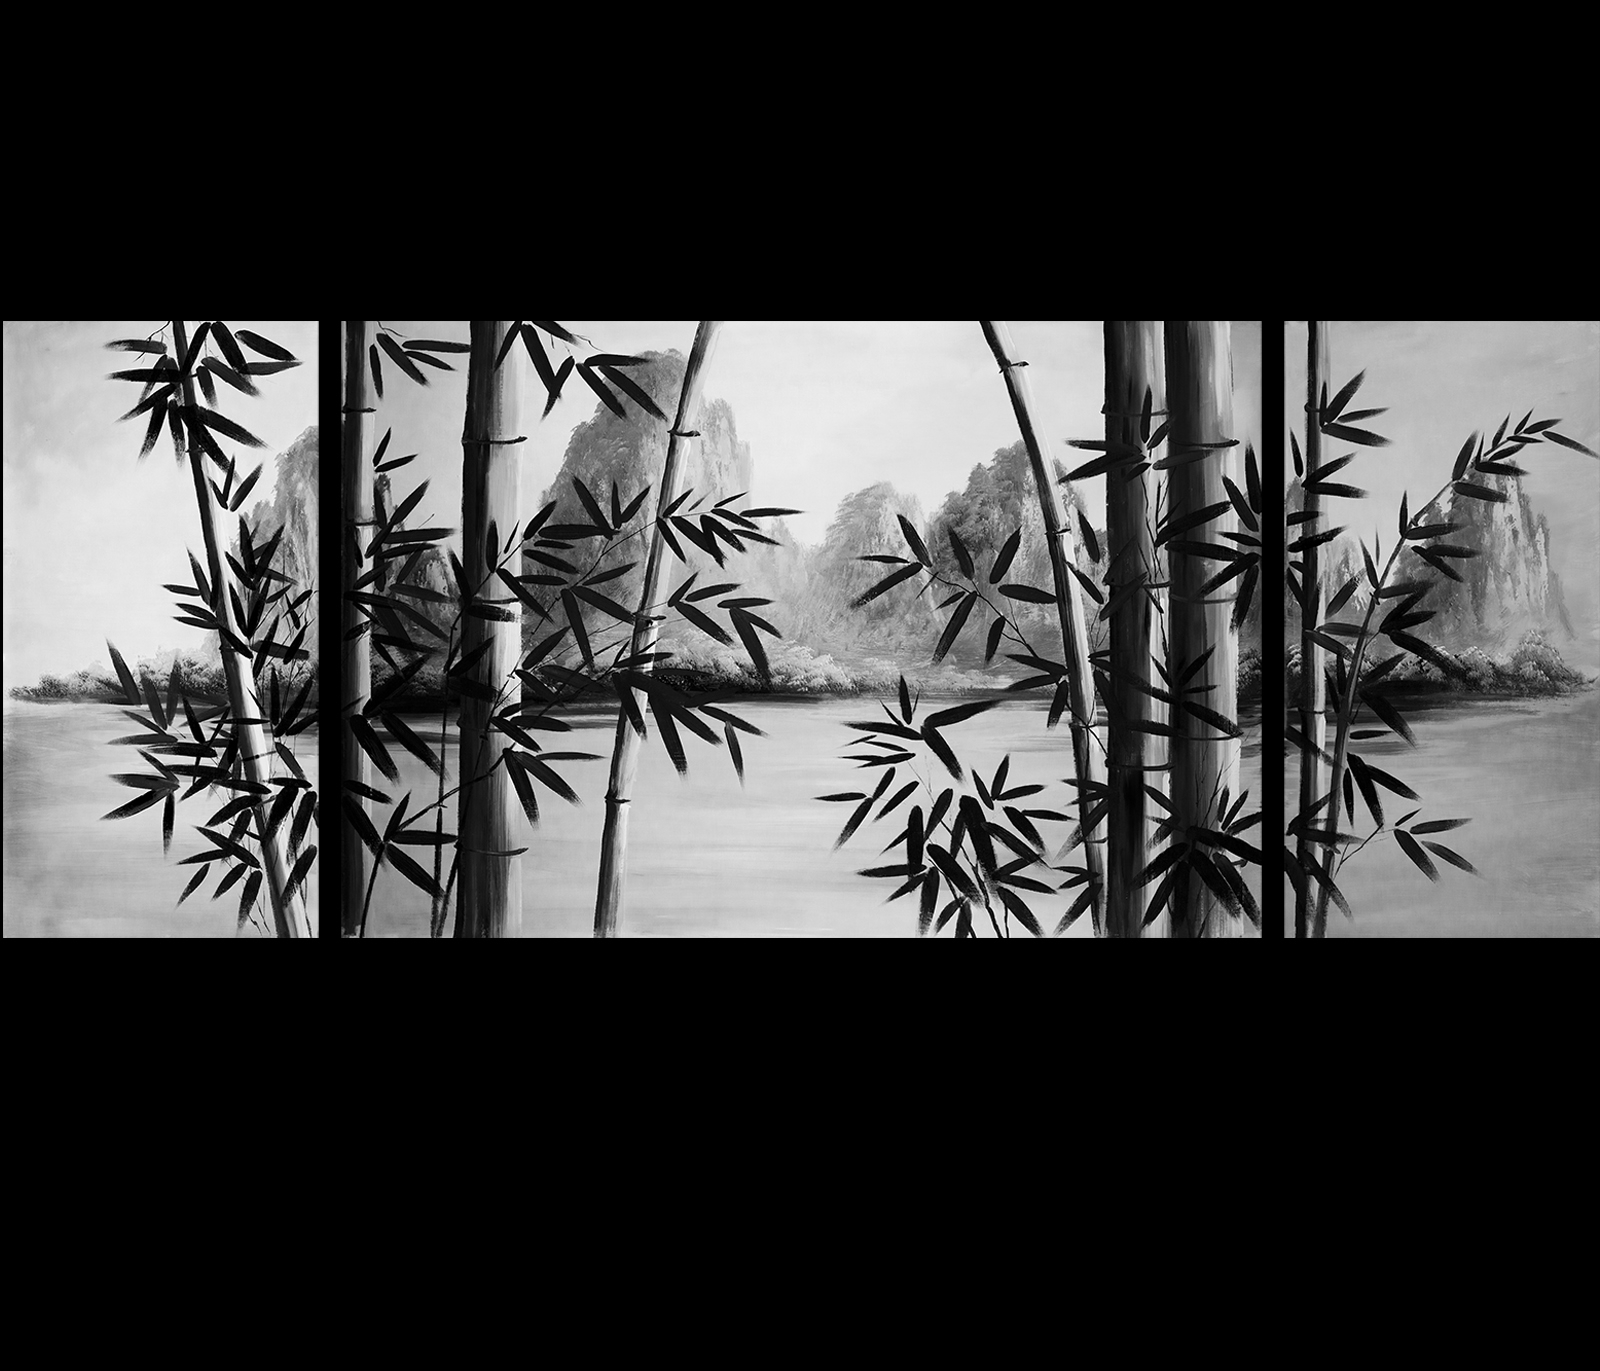 Bamboo Painting, Bamboo Paintings | Bamboo Paintings | Pinterest Pertaining To Most Recent Black And White Photography Canvas Wall Art (View 9 of 15)